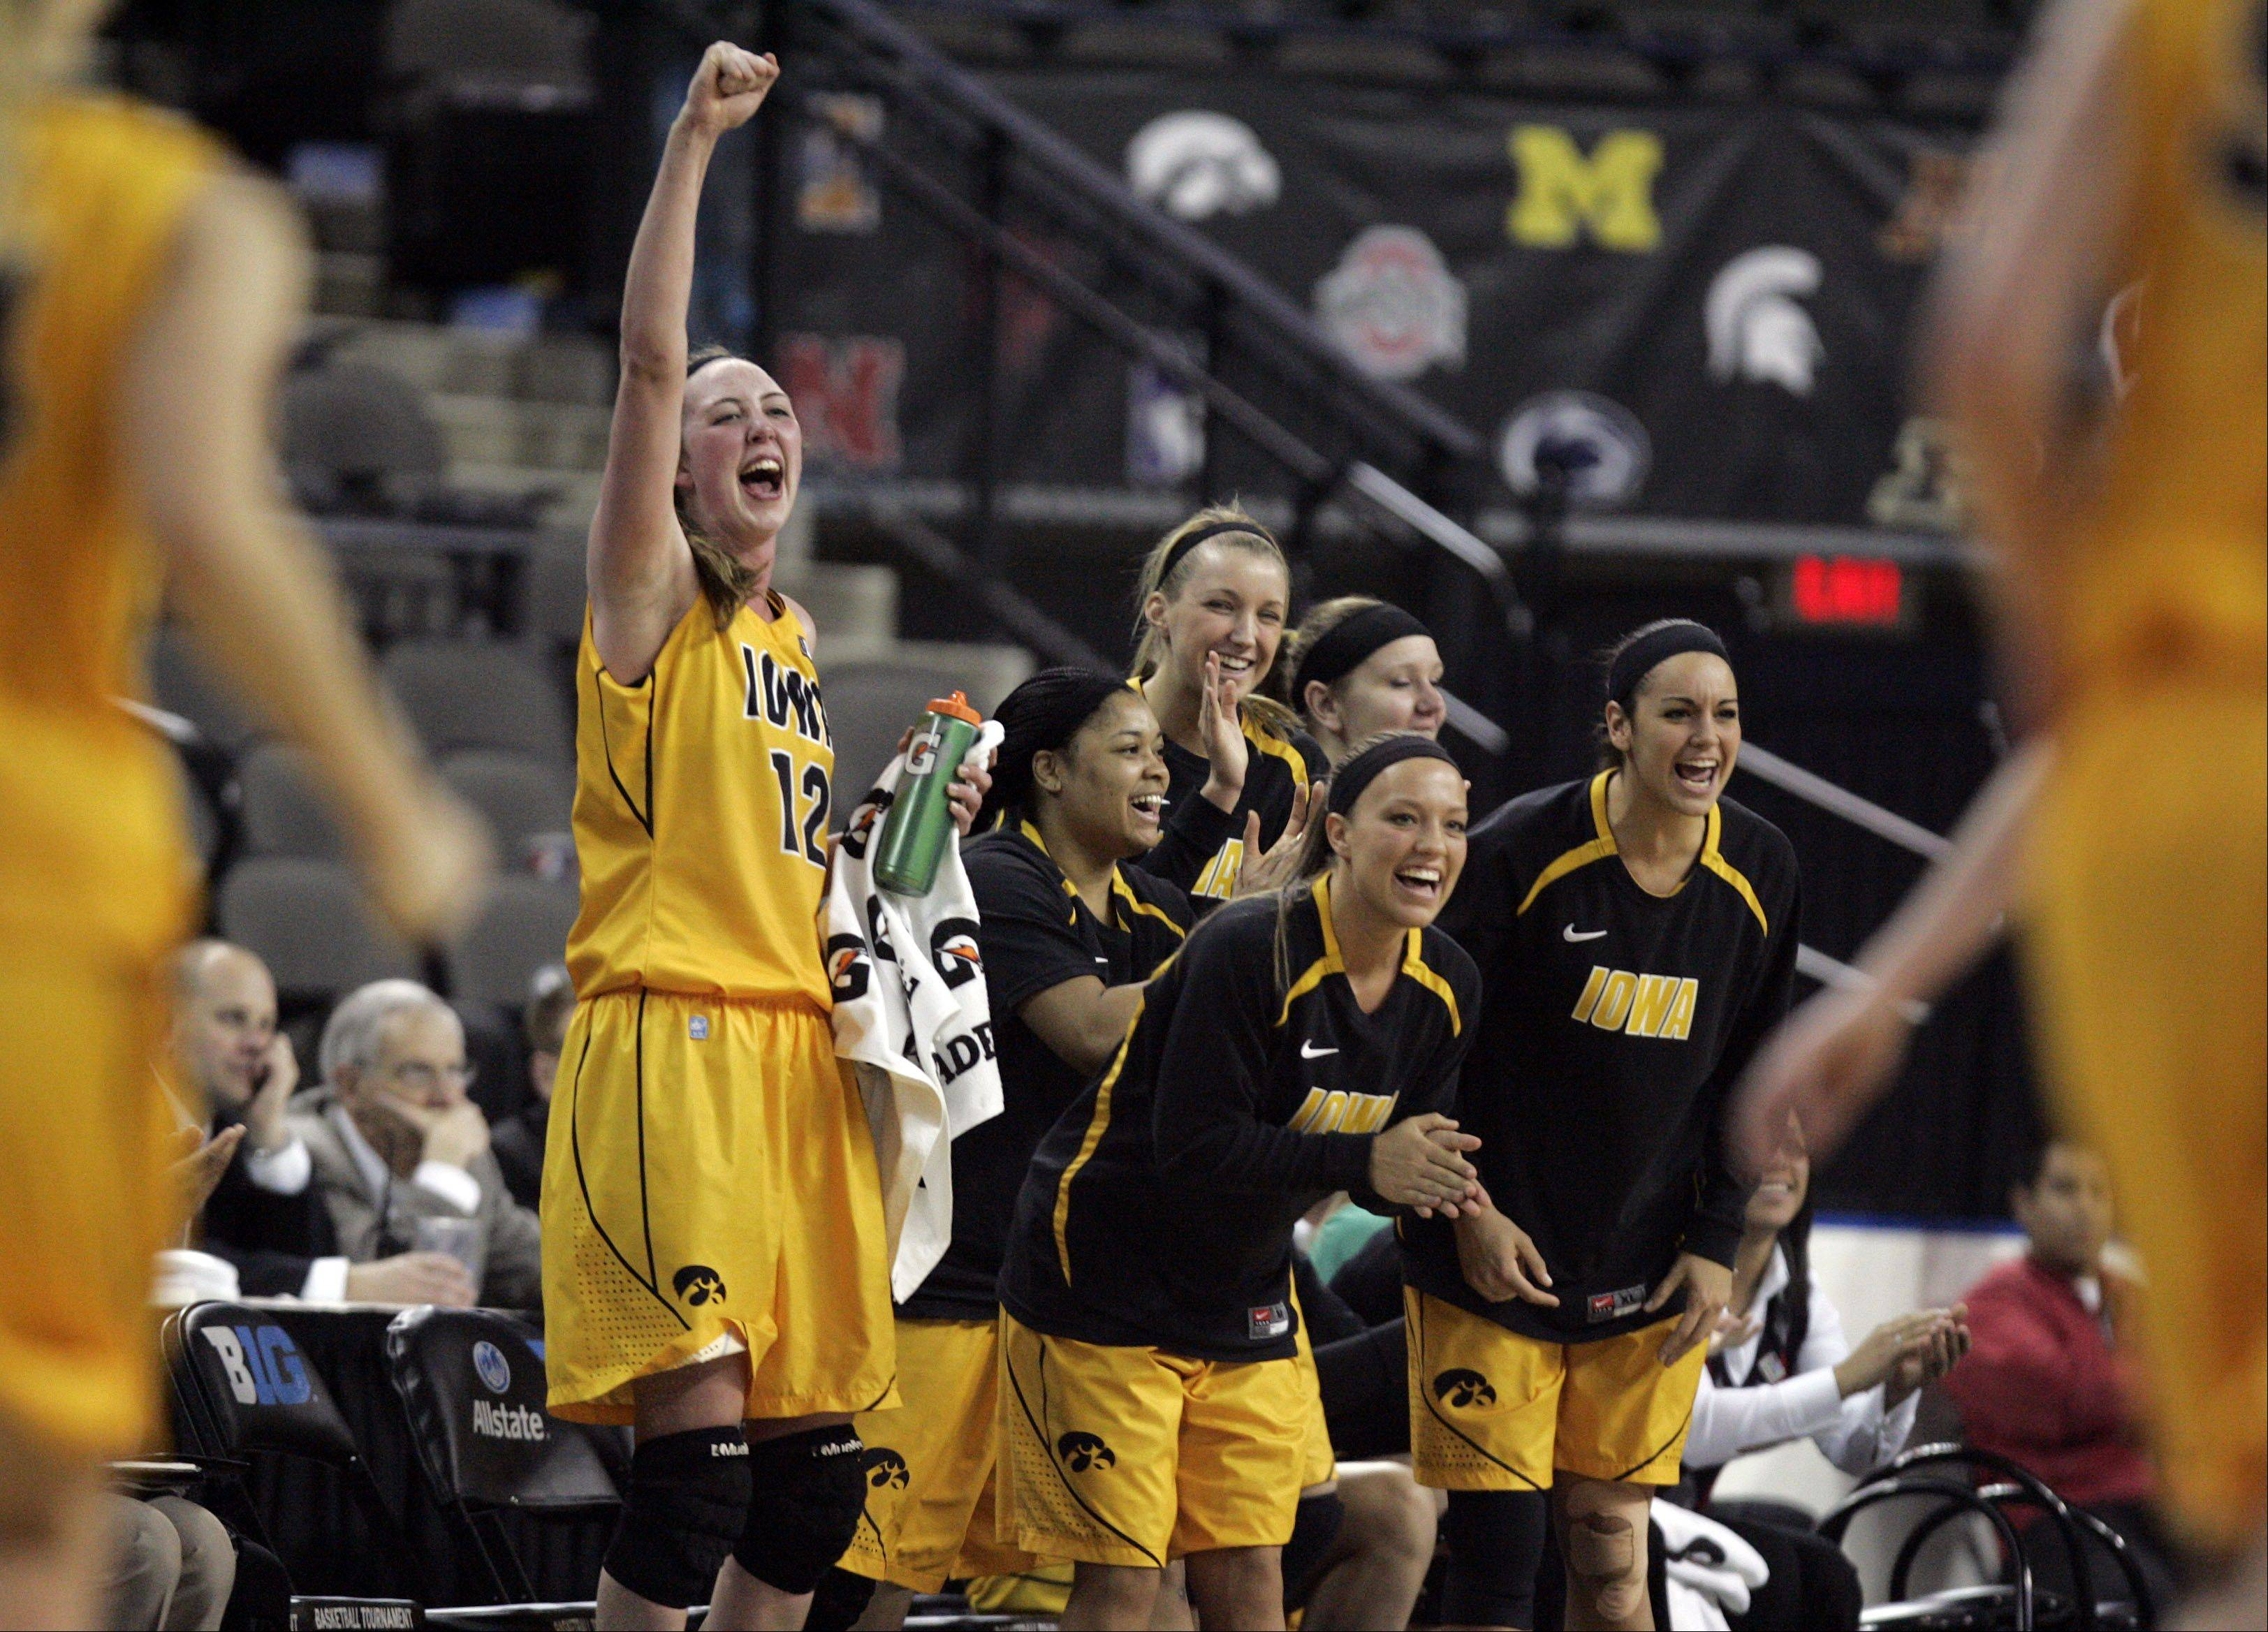 The Iowa bench reacts as the clock winds down during Northwestern vs Iowa action Thursday at the Big Ten Women�s Basketball Tournament at the Sears Centre in Hoffman Estates. Iowa led the entire game.